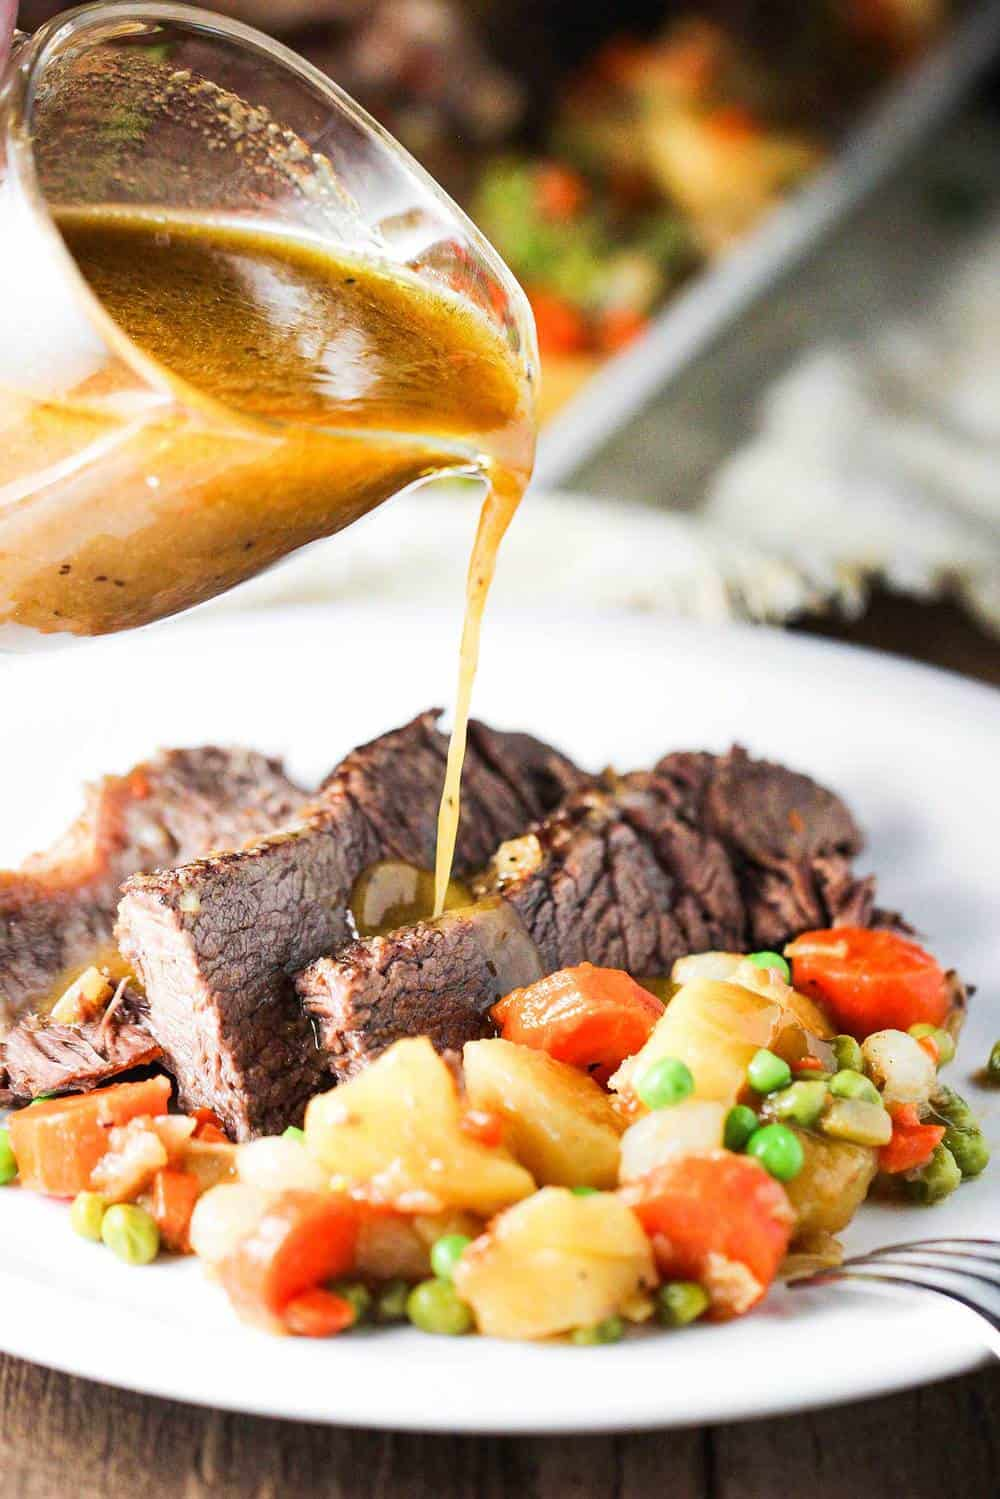 Gravy pouring onto a plate of American pot roast and vegetables